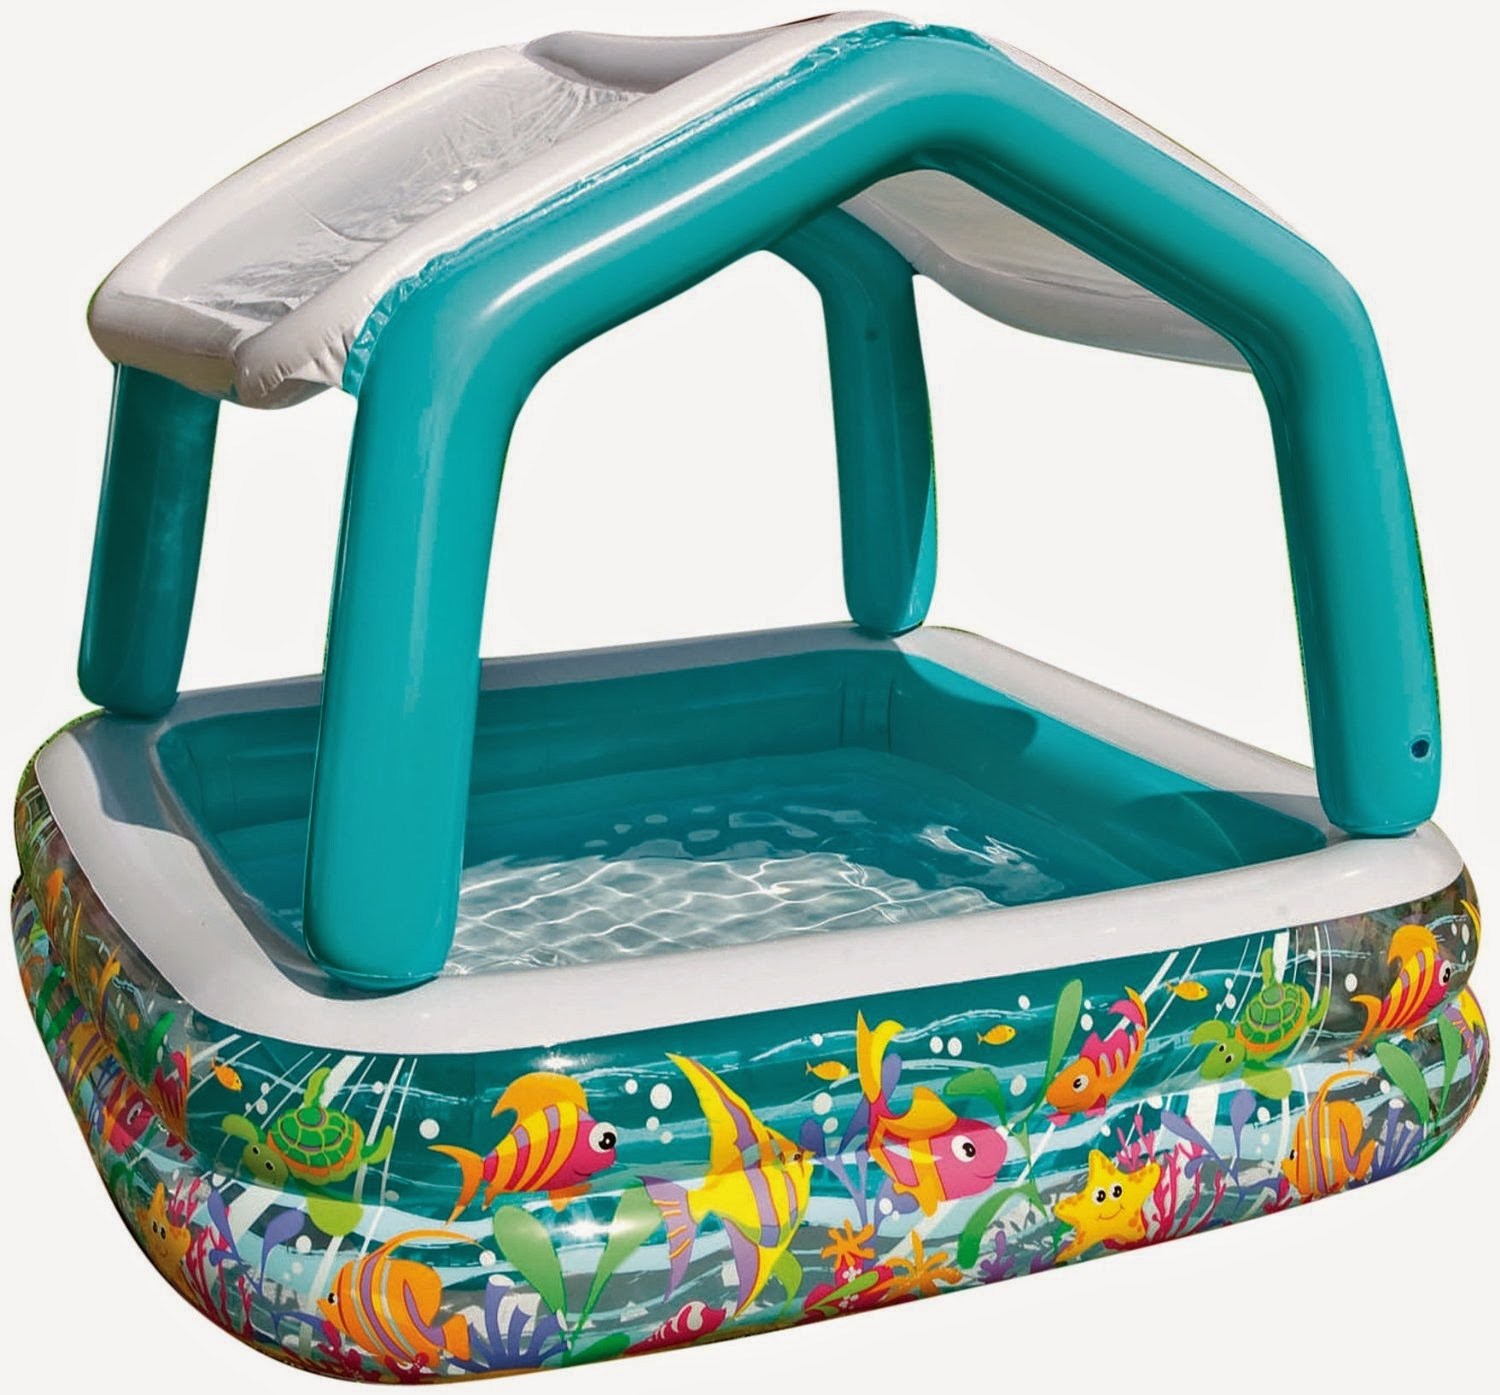 Pools For Kids kids swimming pools: swimming pools for kids